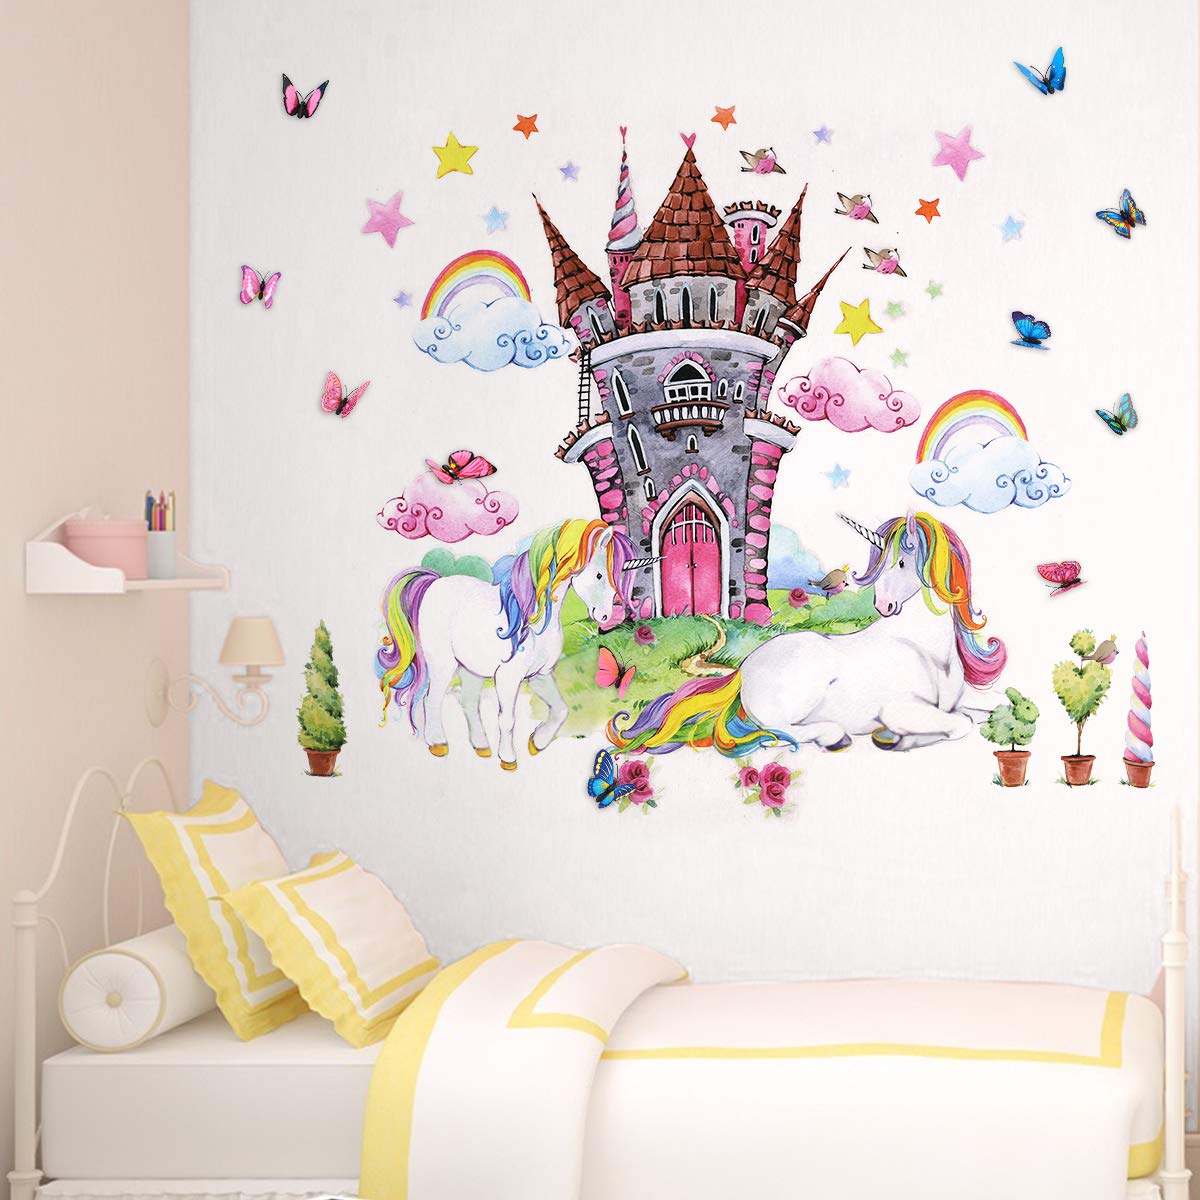 Unicorn Wall Decor Decals Stickers Bedroom Room Nursery for Teen Girls Kids Decorations 4pcs Large Unicorn Castle with 12pcs 3D Butterfly